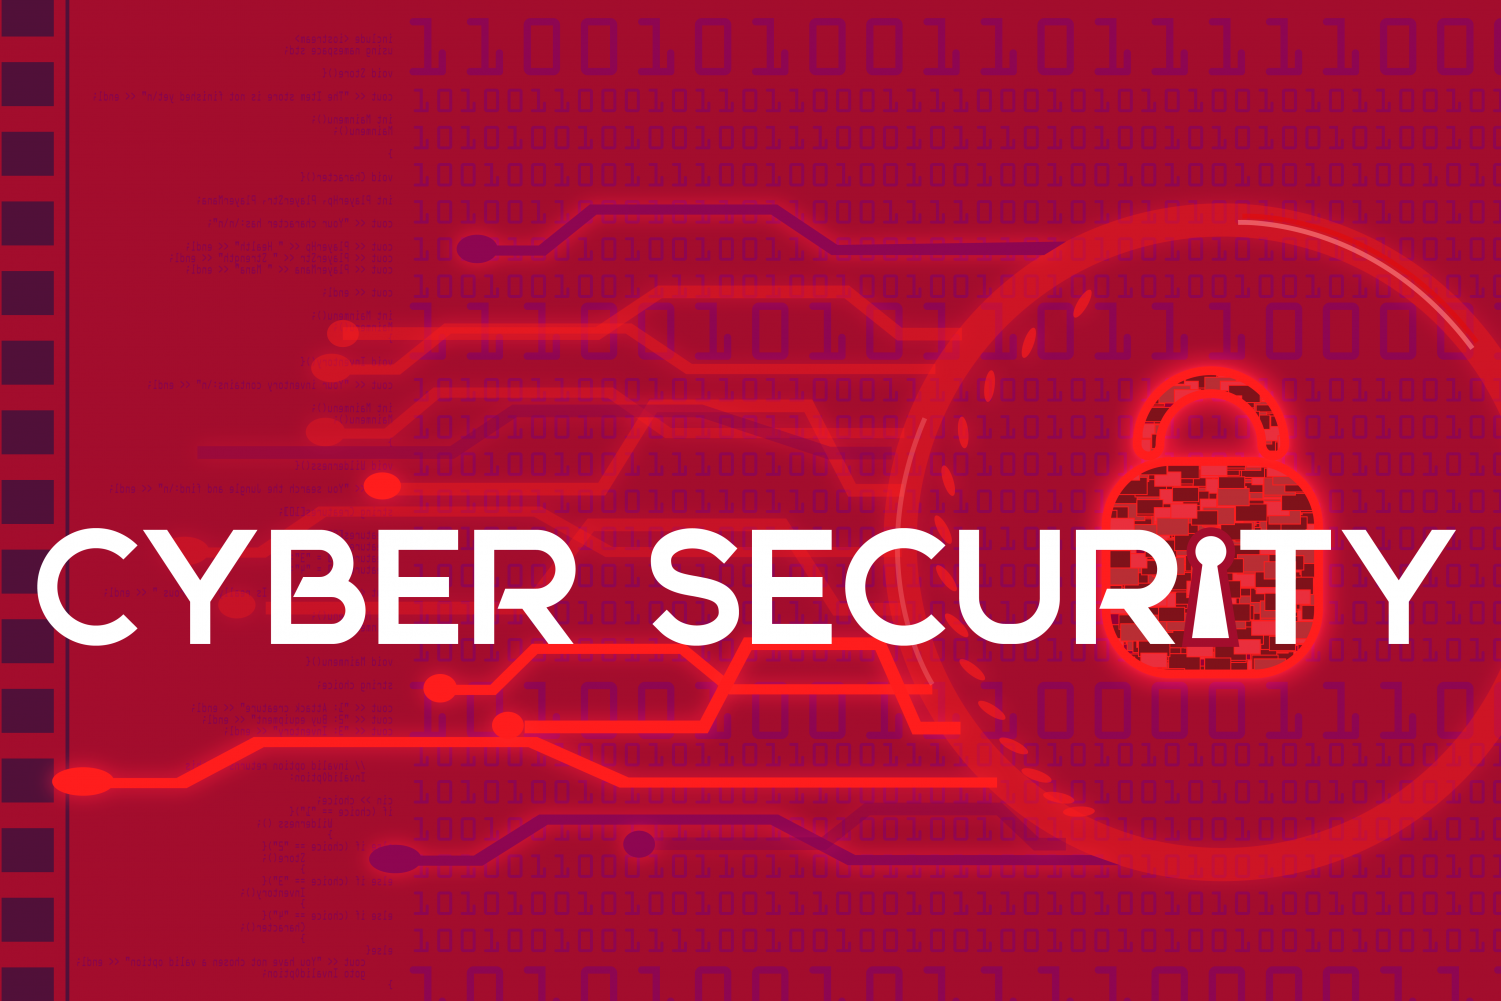 If approved by the State, a Cybersecurity degree will be offered in the Spring of 2020.